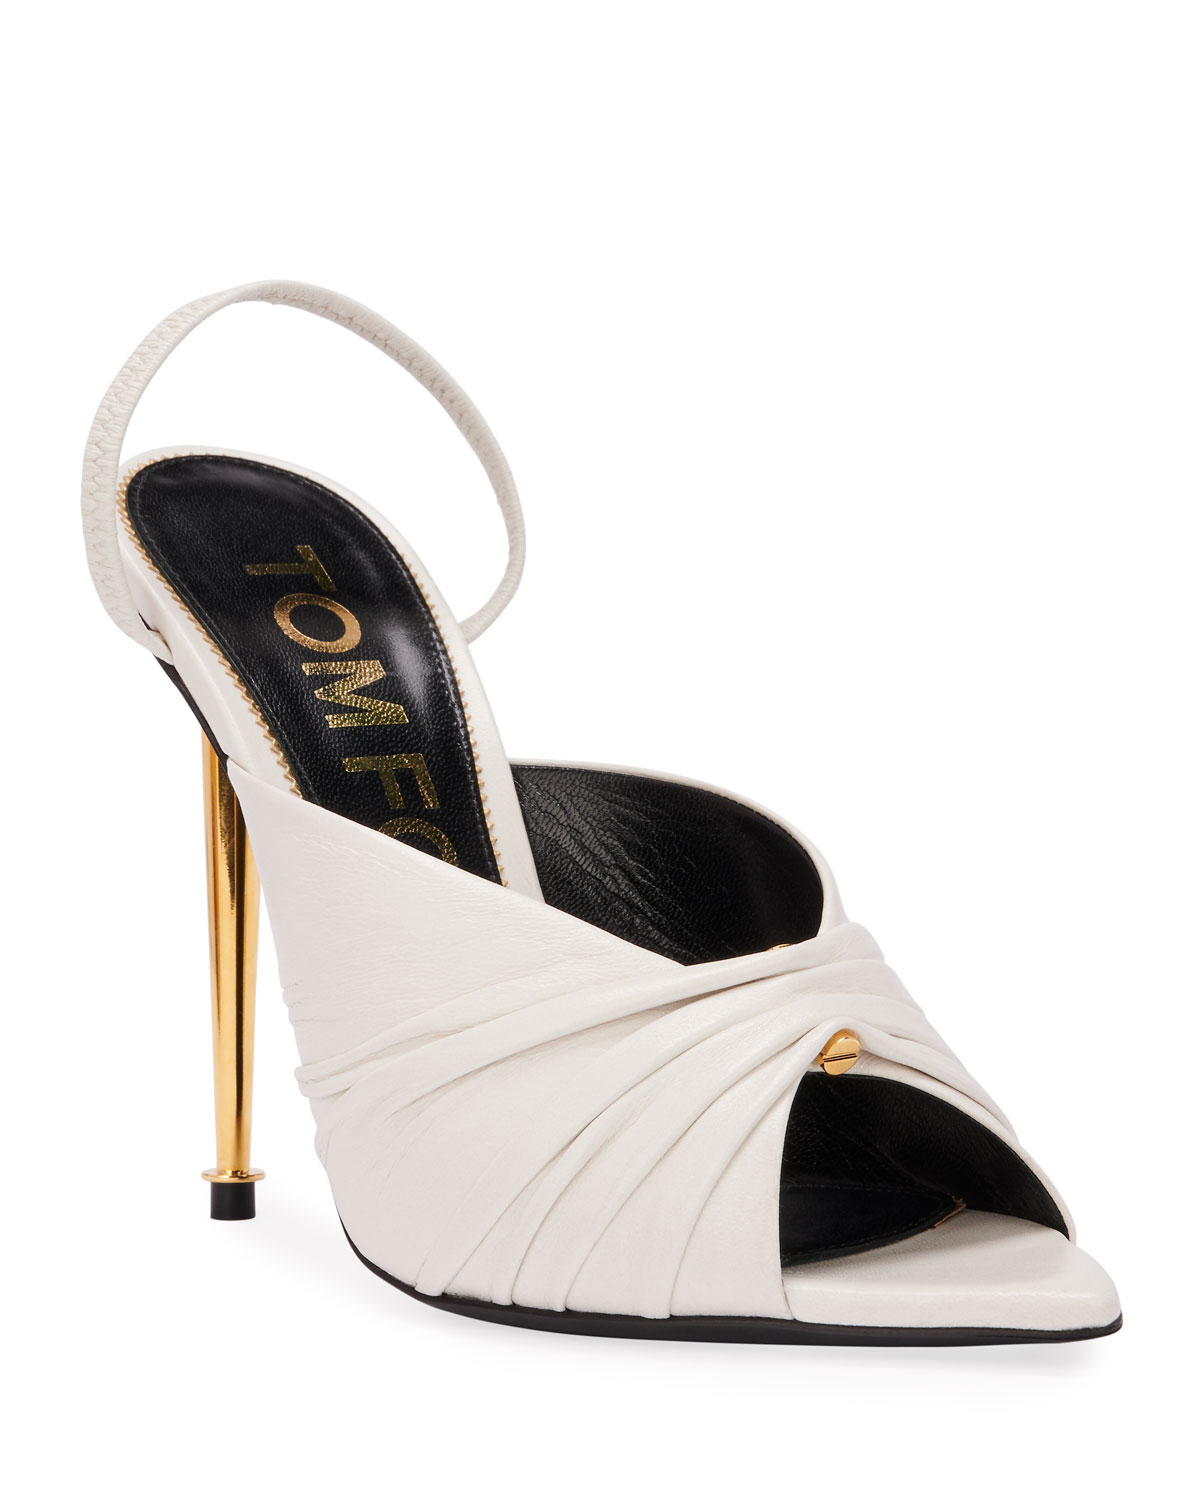 TOM FORD Open-Toe Leather Slingback